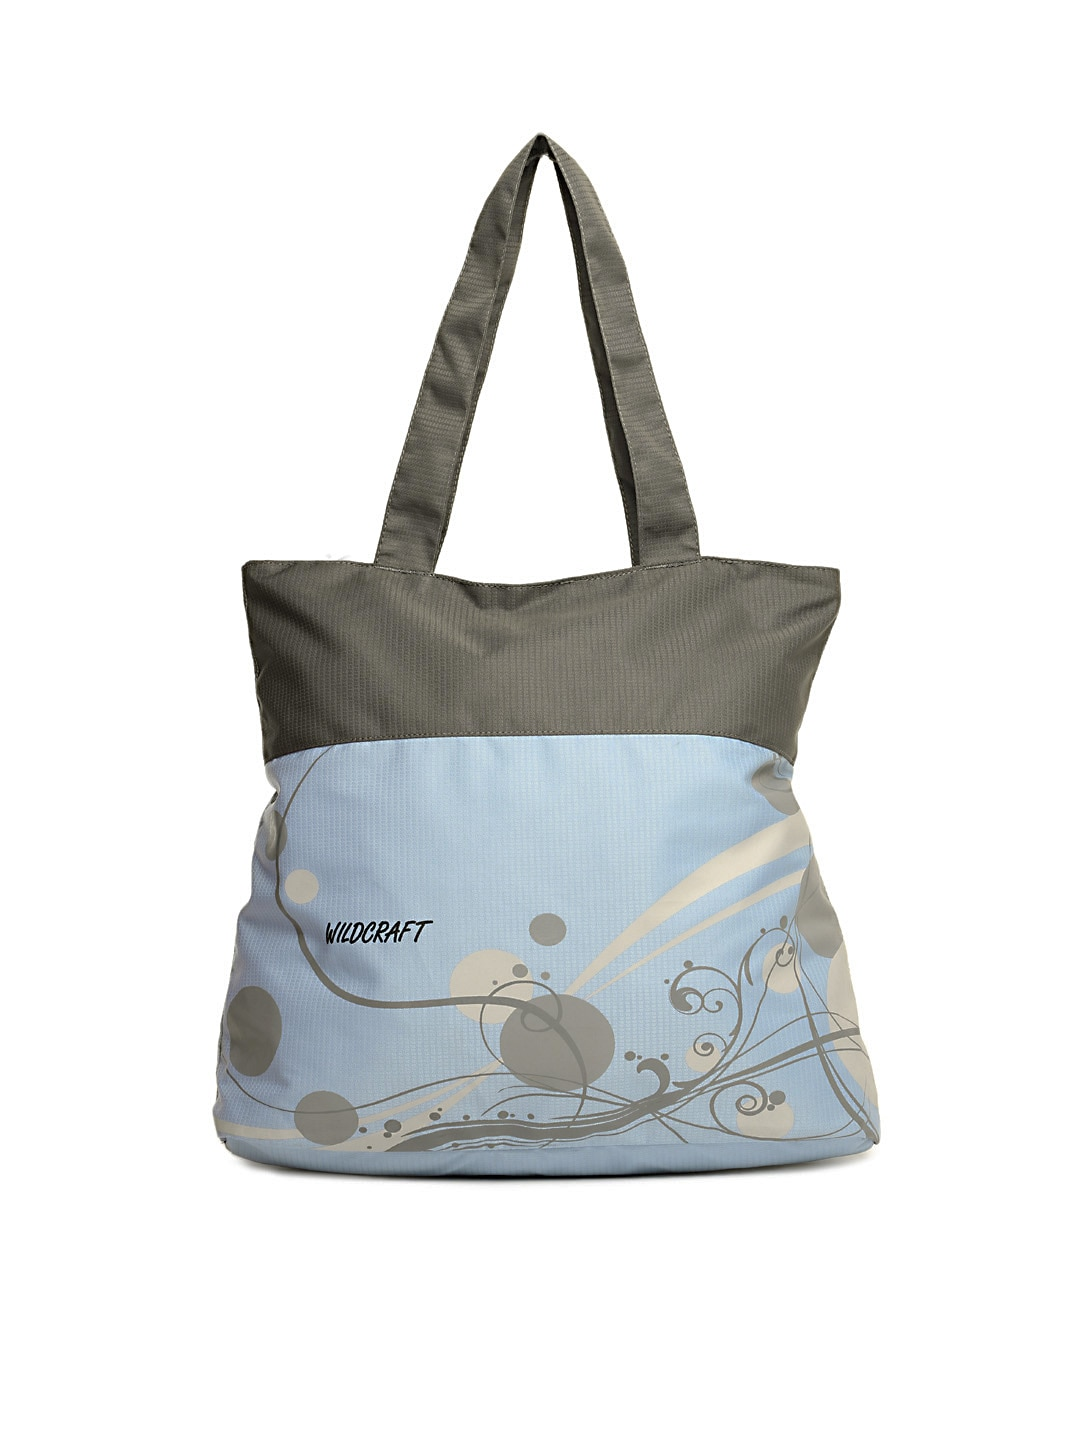 Wildcraft 8903338210108 Women Blue And Grey Tote Bag Price In India